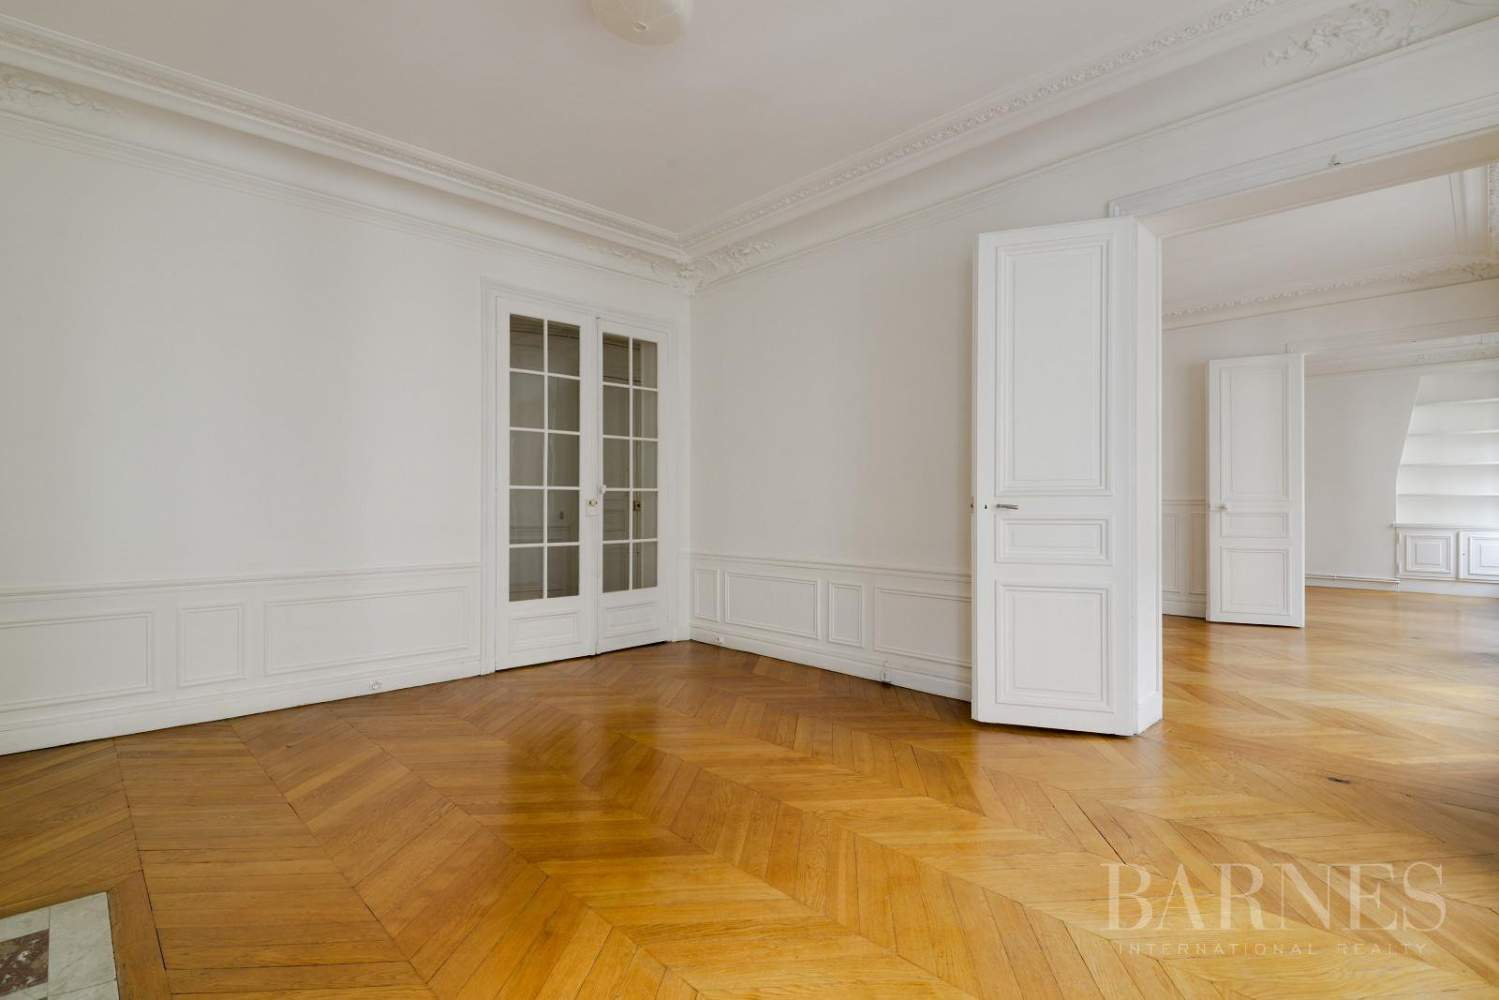 APPARTEMENT NEUILLY SABLONS 4 CHAMBRES 145M² picture 15